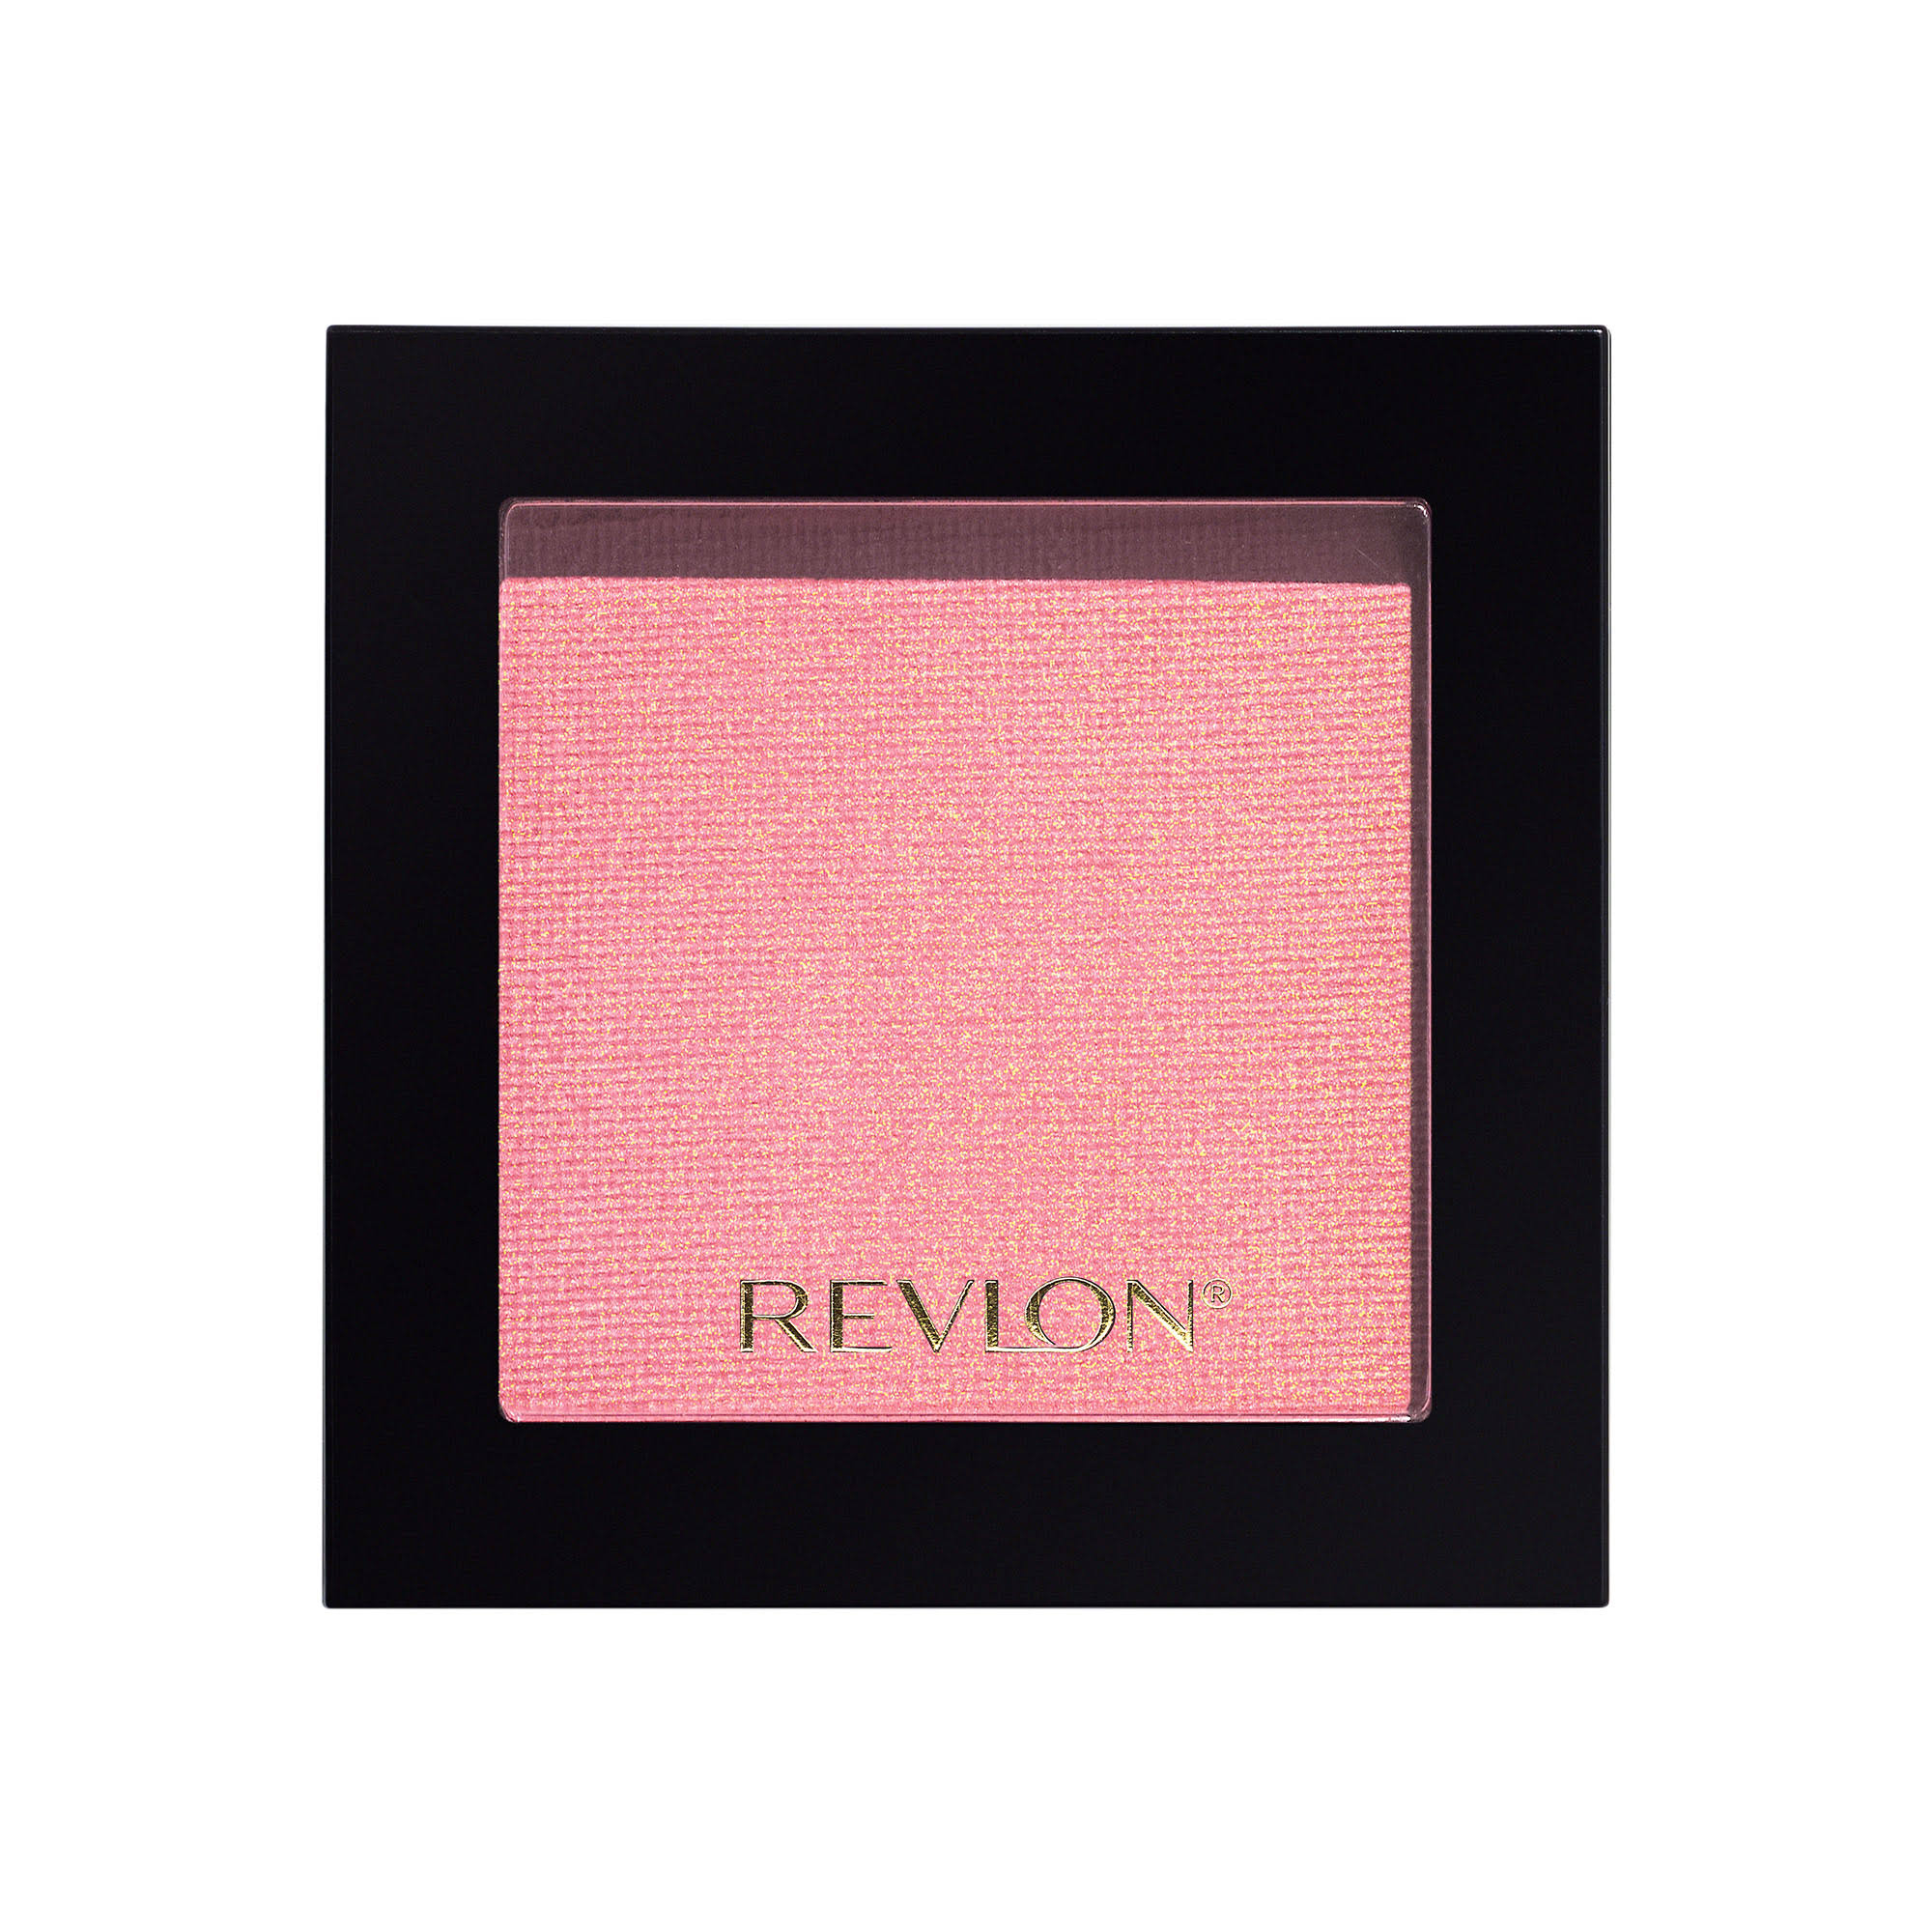 Revlon Powder Blush - 020 Ravishing Rose, 0.17oz